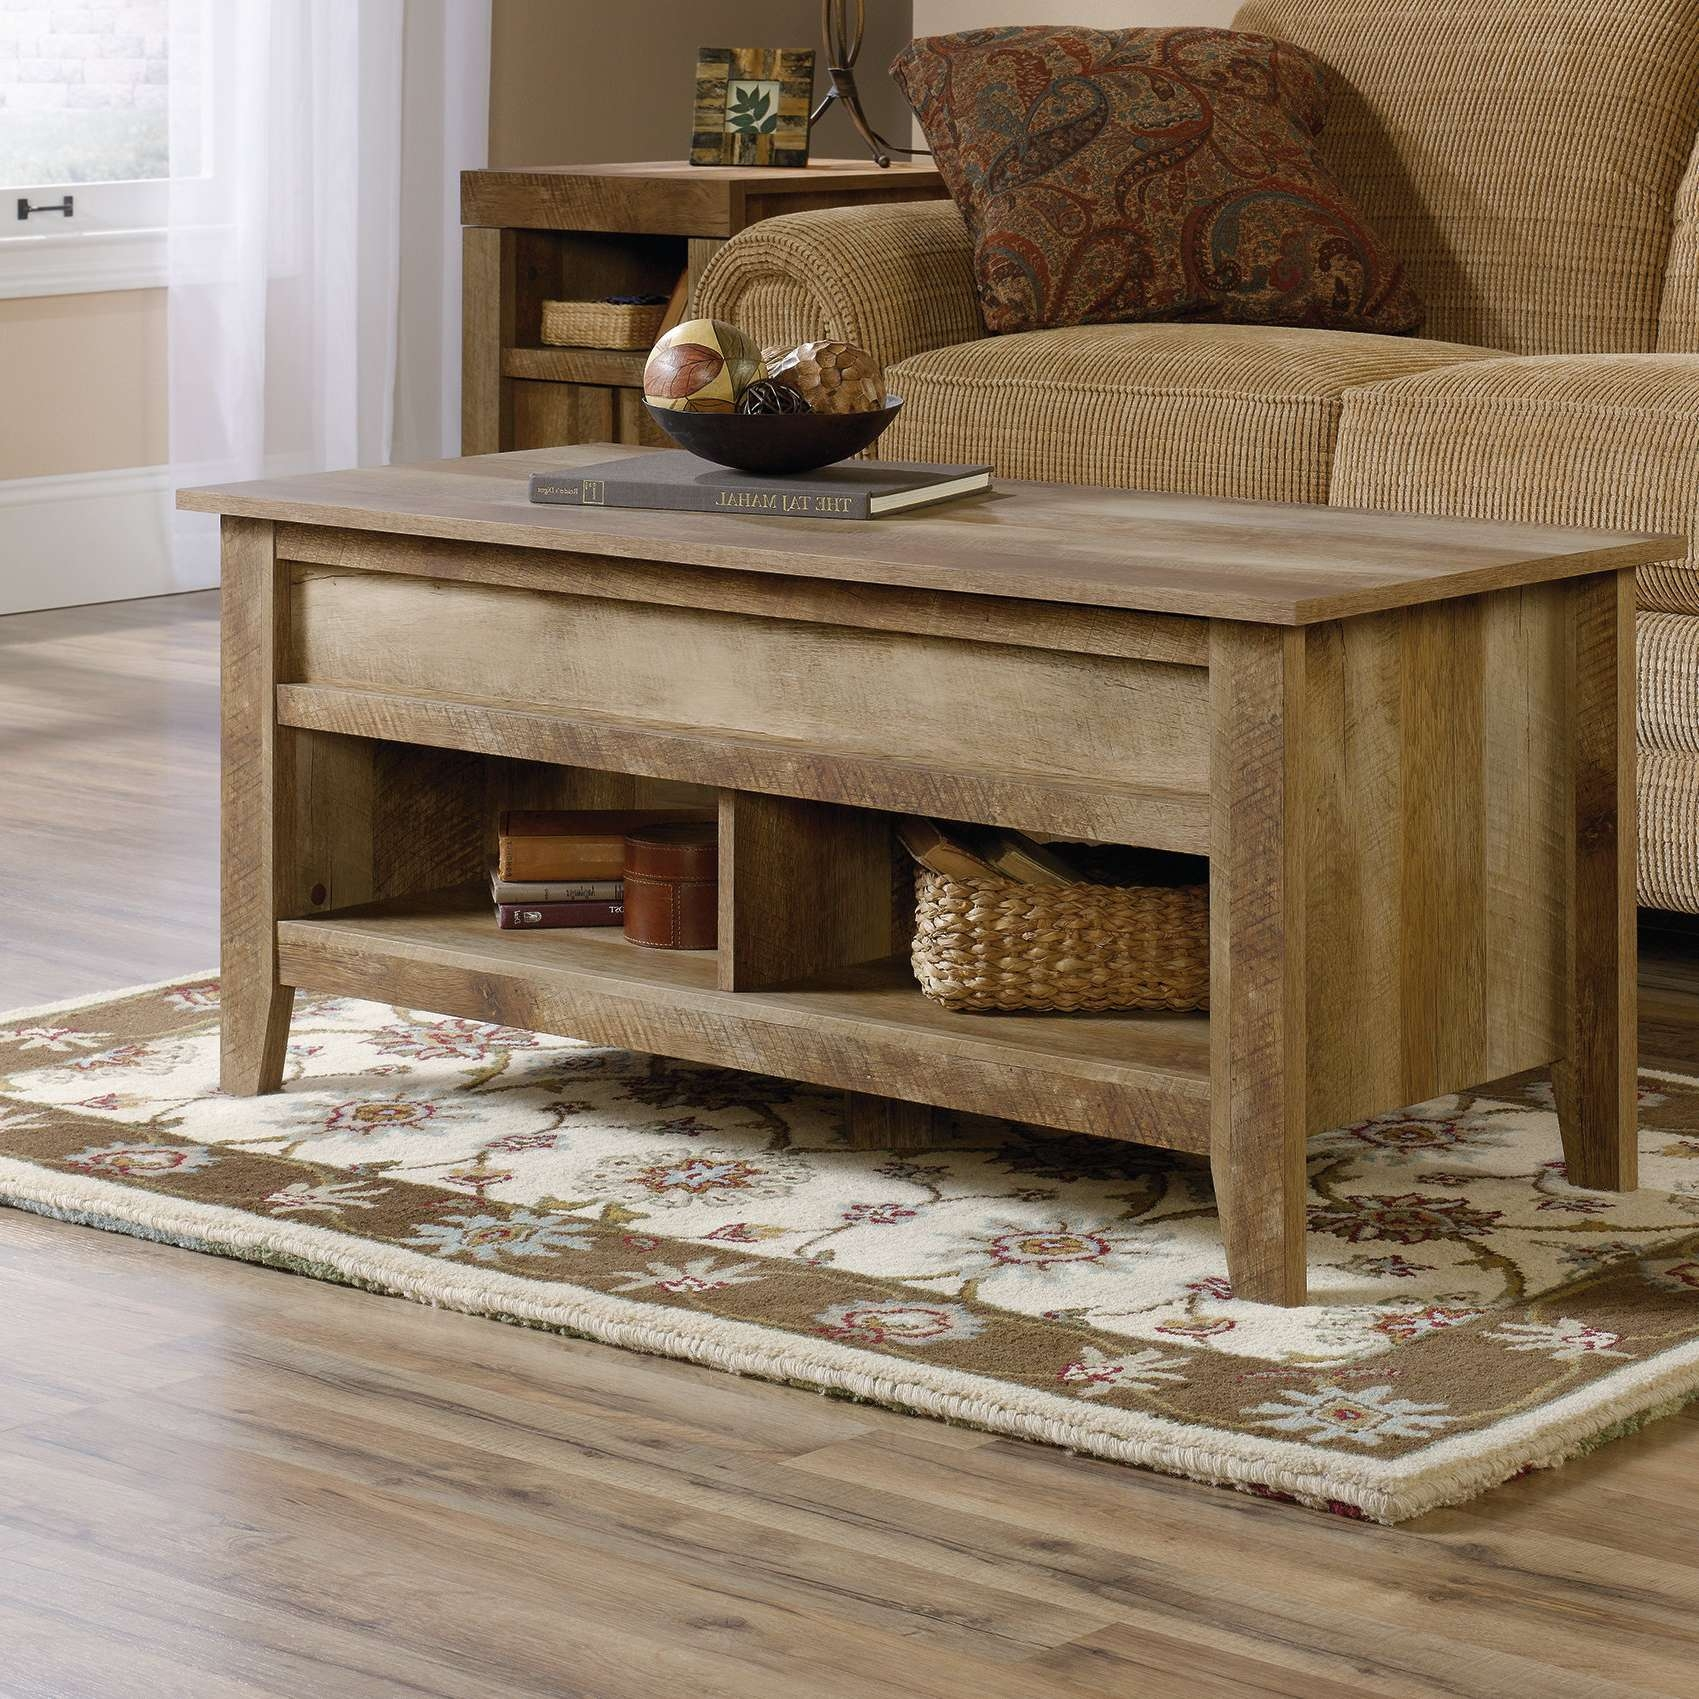 Lift Top Coffee Tables You'll Love (View 13 of 20)